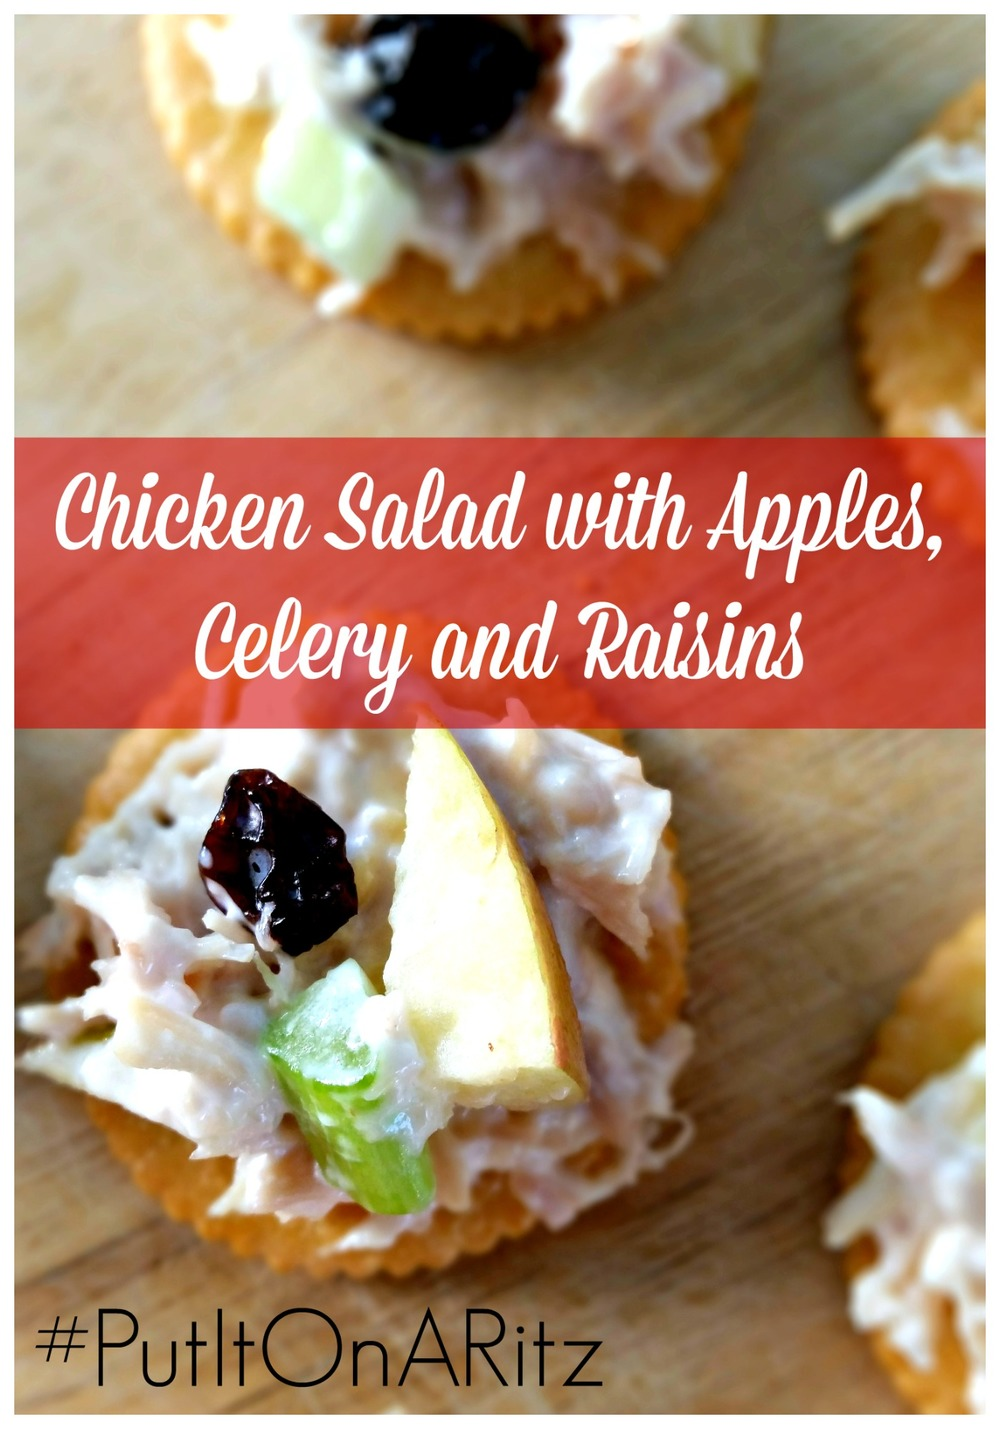 Shredded Chicken, diced apples, celery and raisins. Mixed with Mayo and on top of a RITZ cracker!